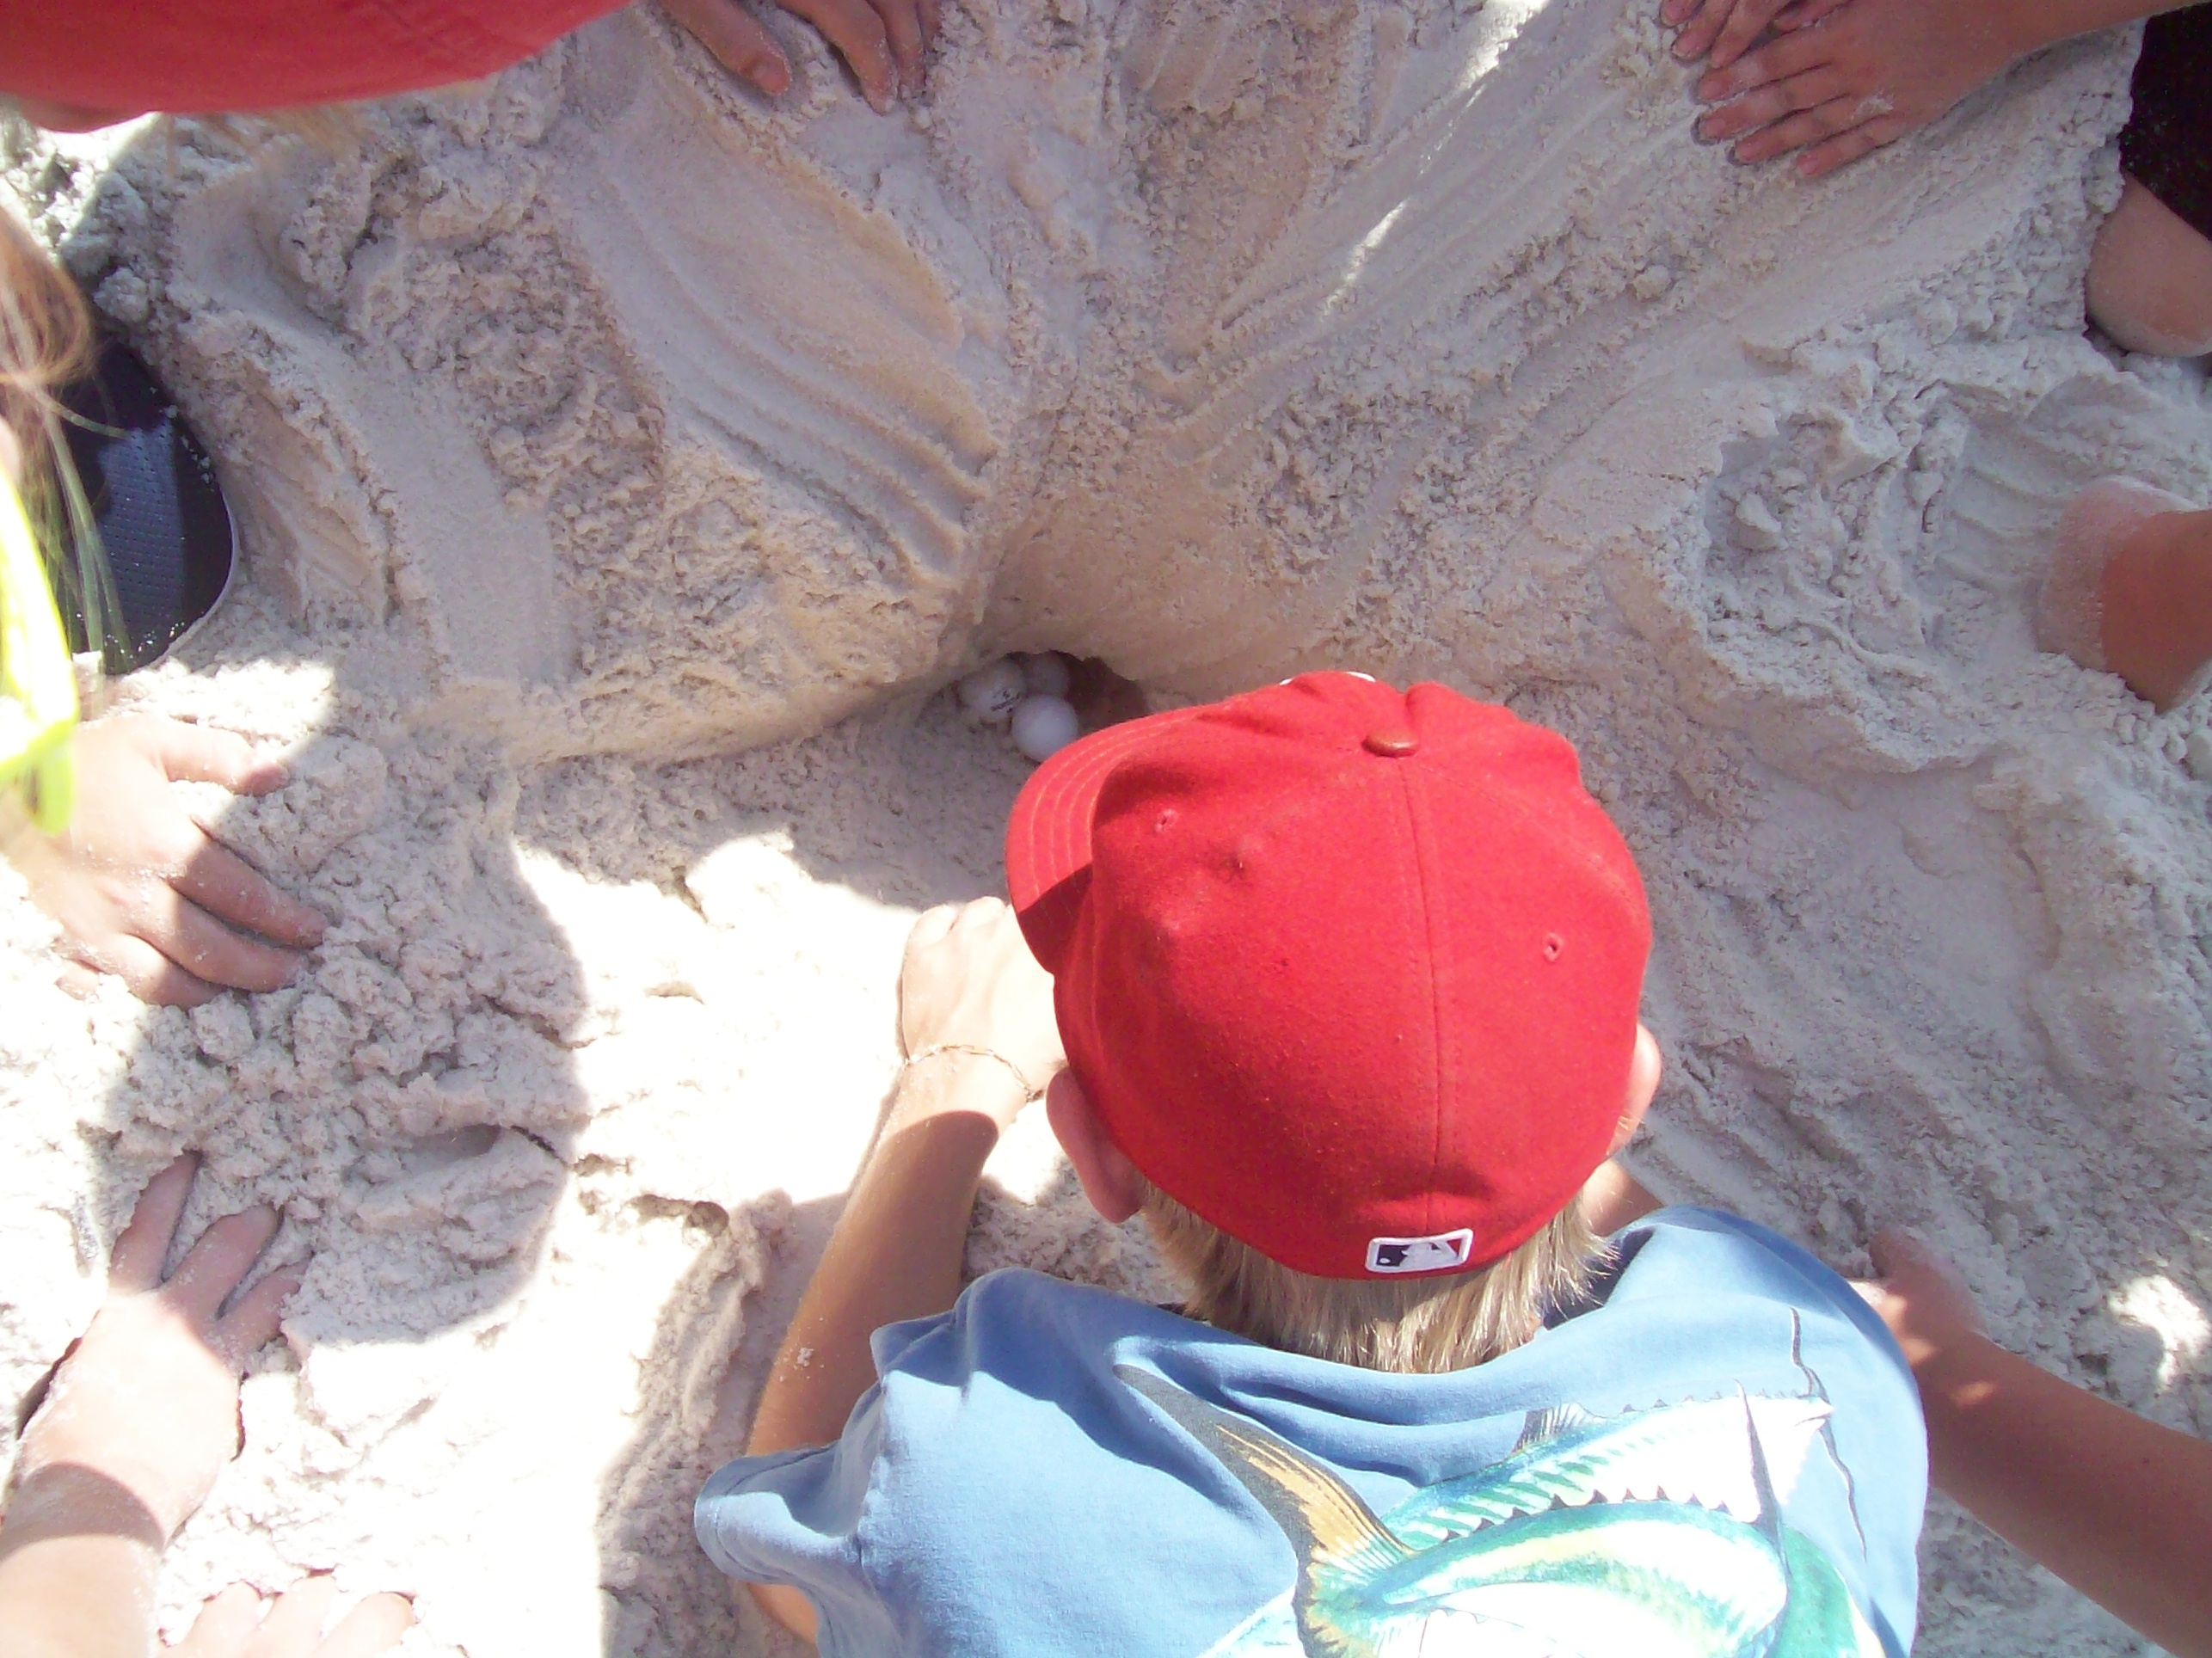 Digging for pretend turtle eggs to measure the depth of the nest...only if the nest needs moving.